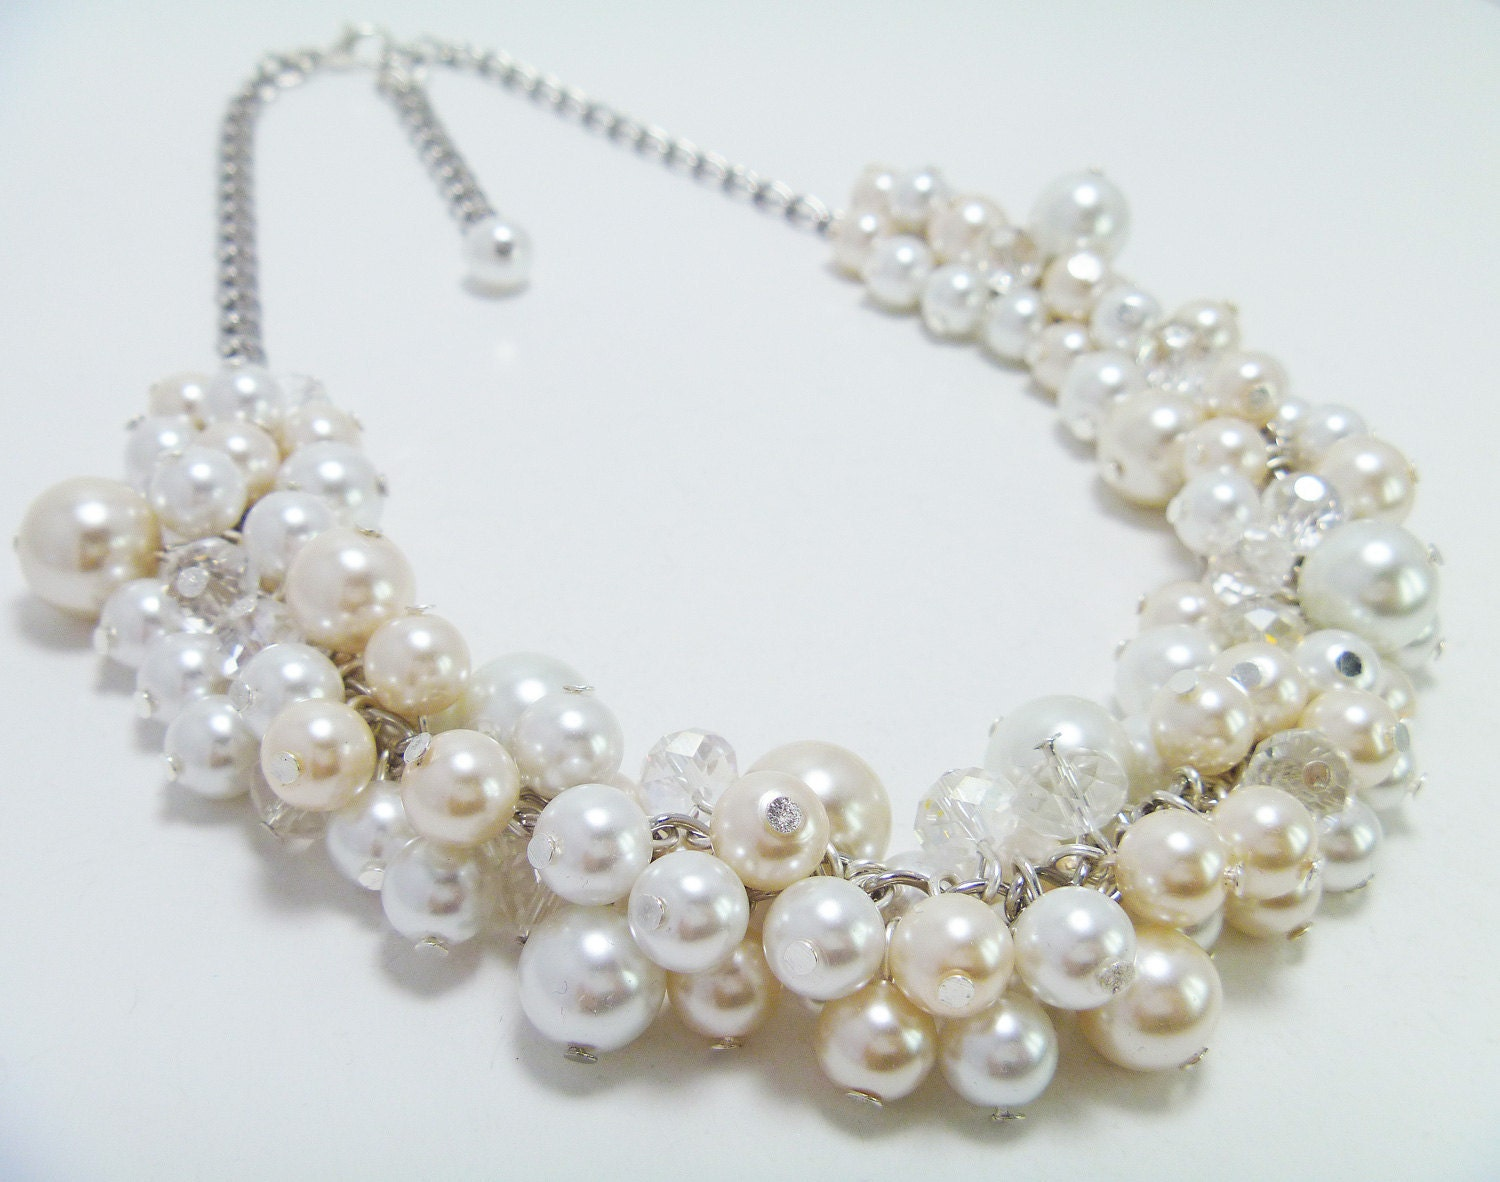 Chunky Pearl Necklace White and off white/ivory by Eienblue